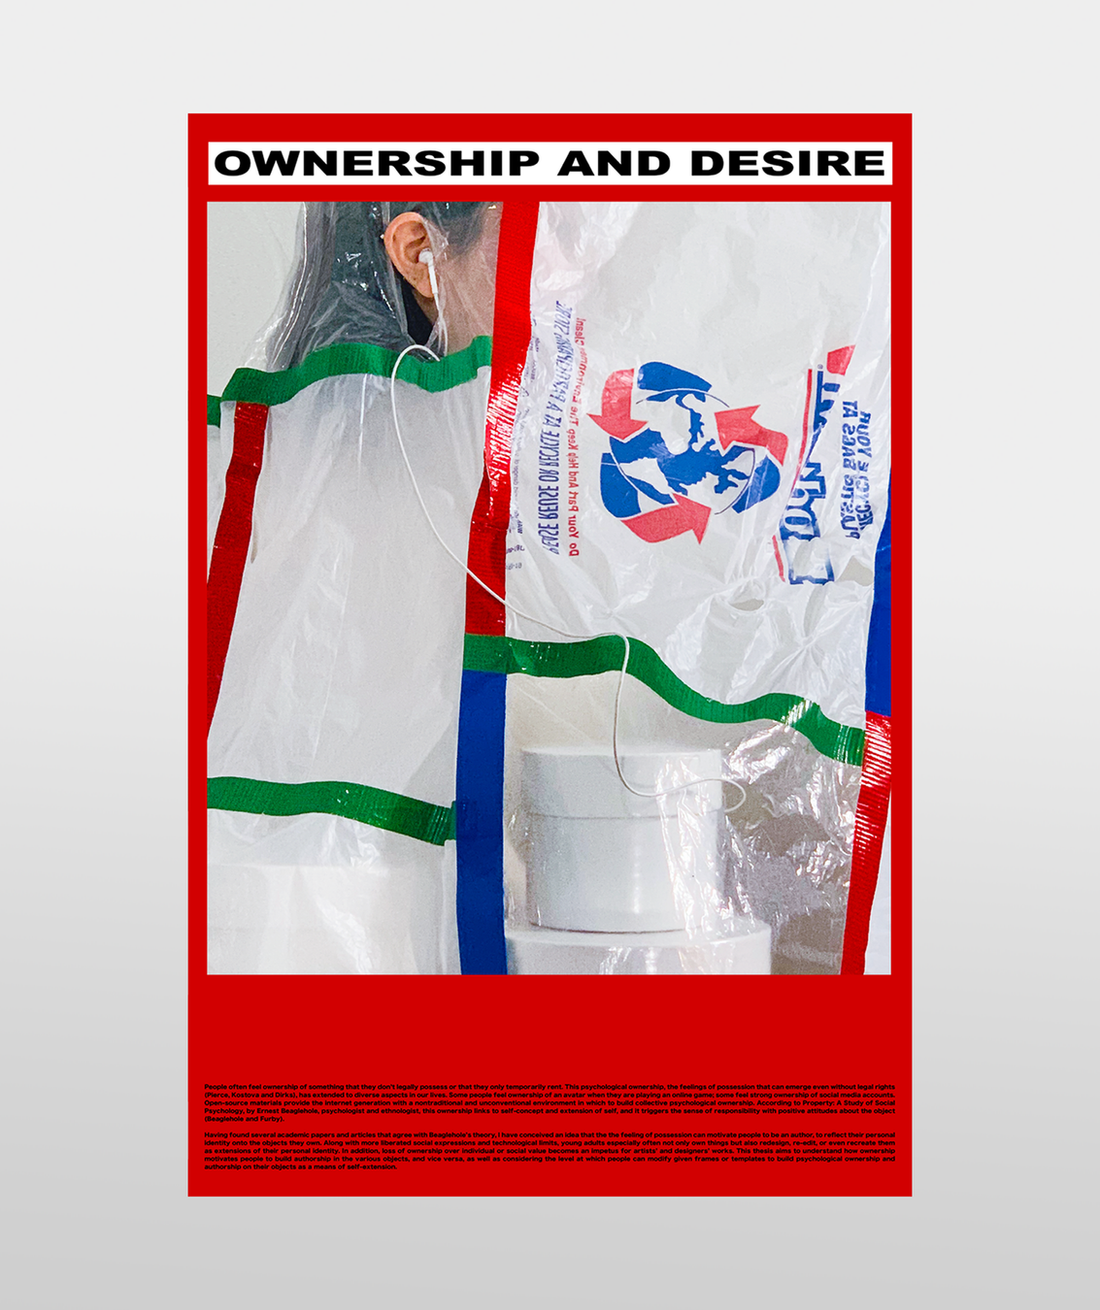 OWNERSHIP AND DESIRE